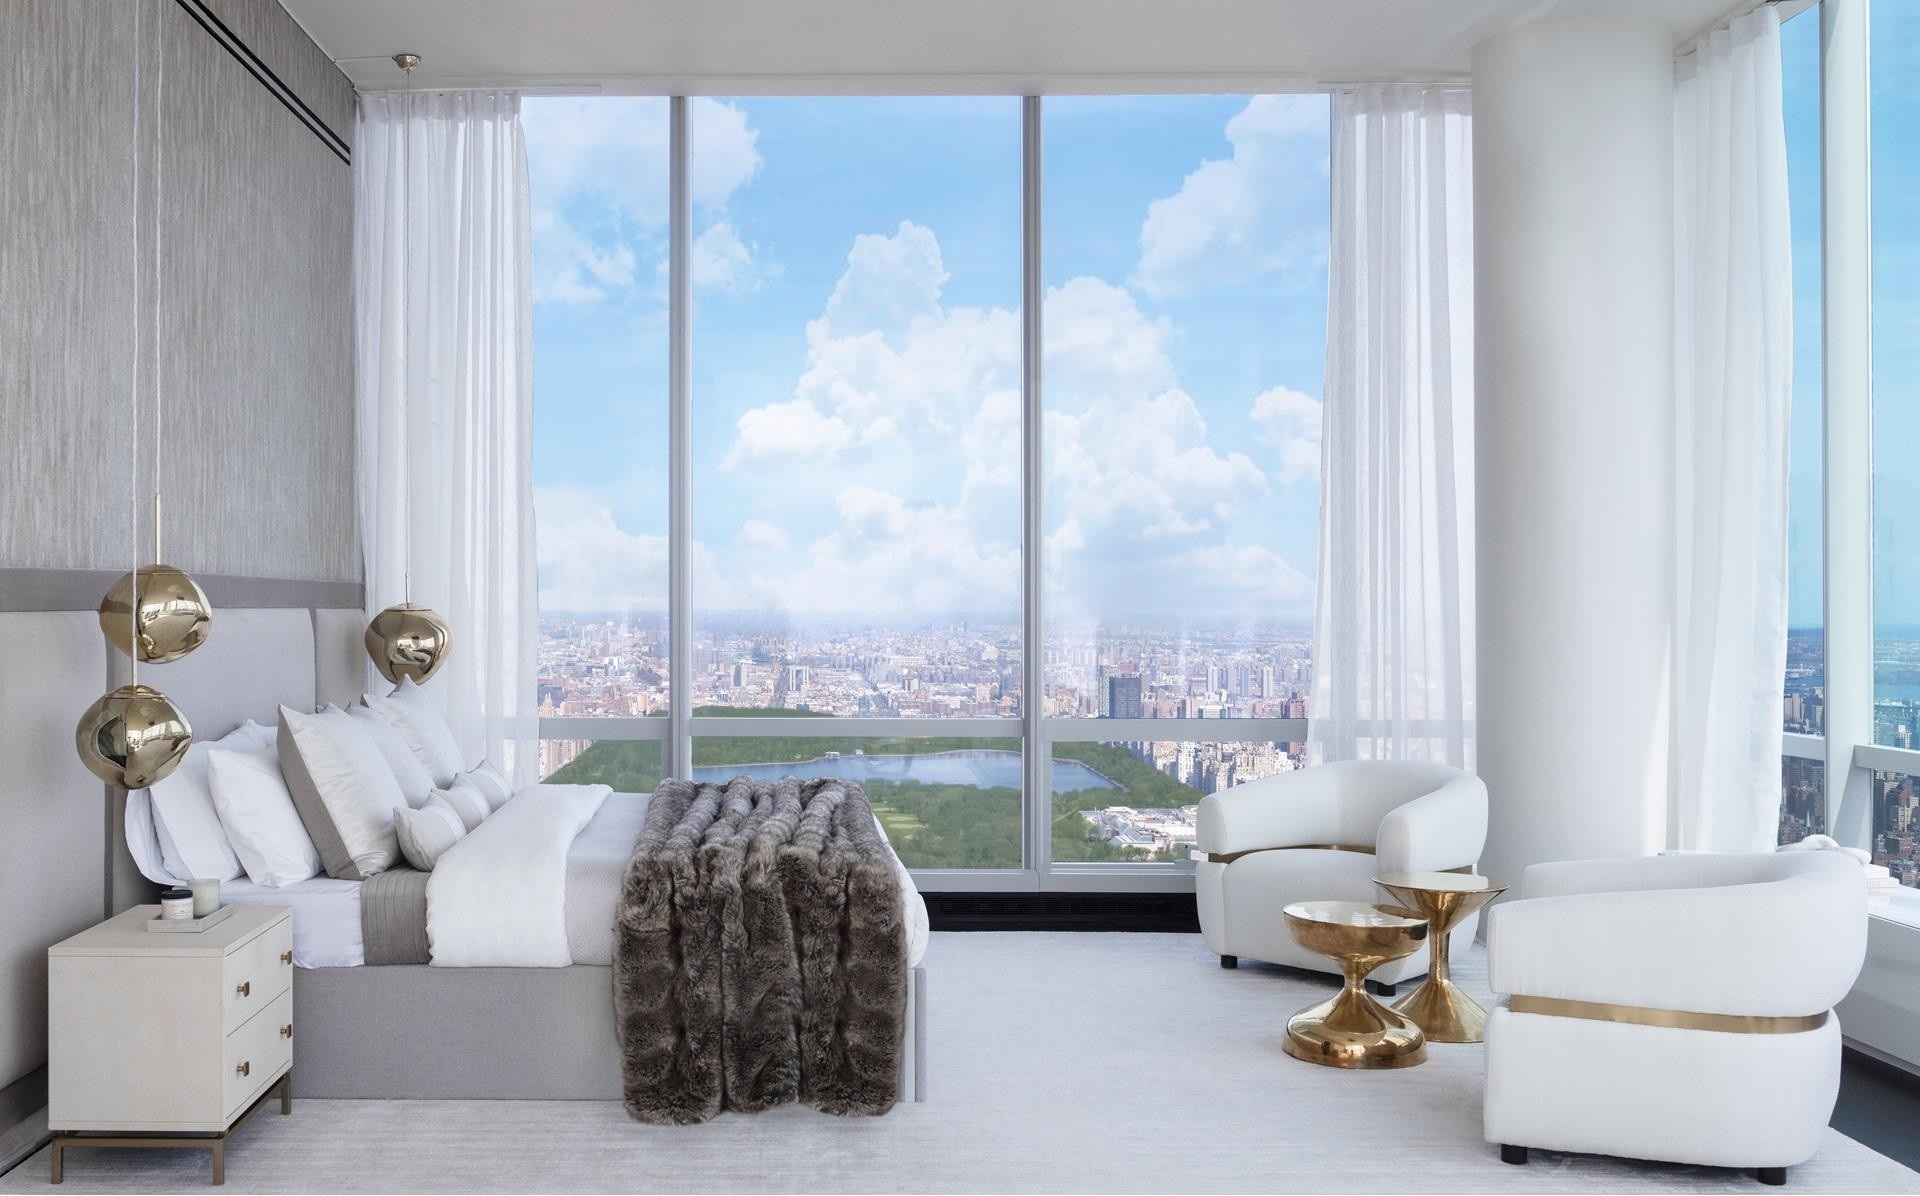 13. Condominiums for Sale at One57, 157 West 57th St, 87 Midtown West, New York, NY 10019